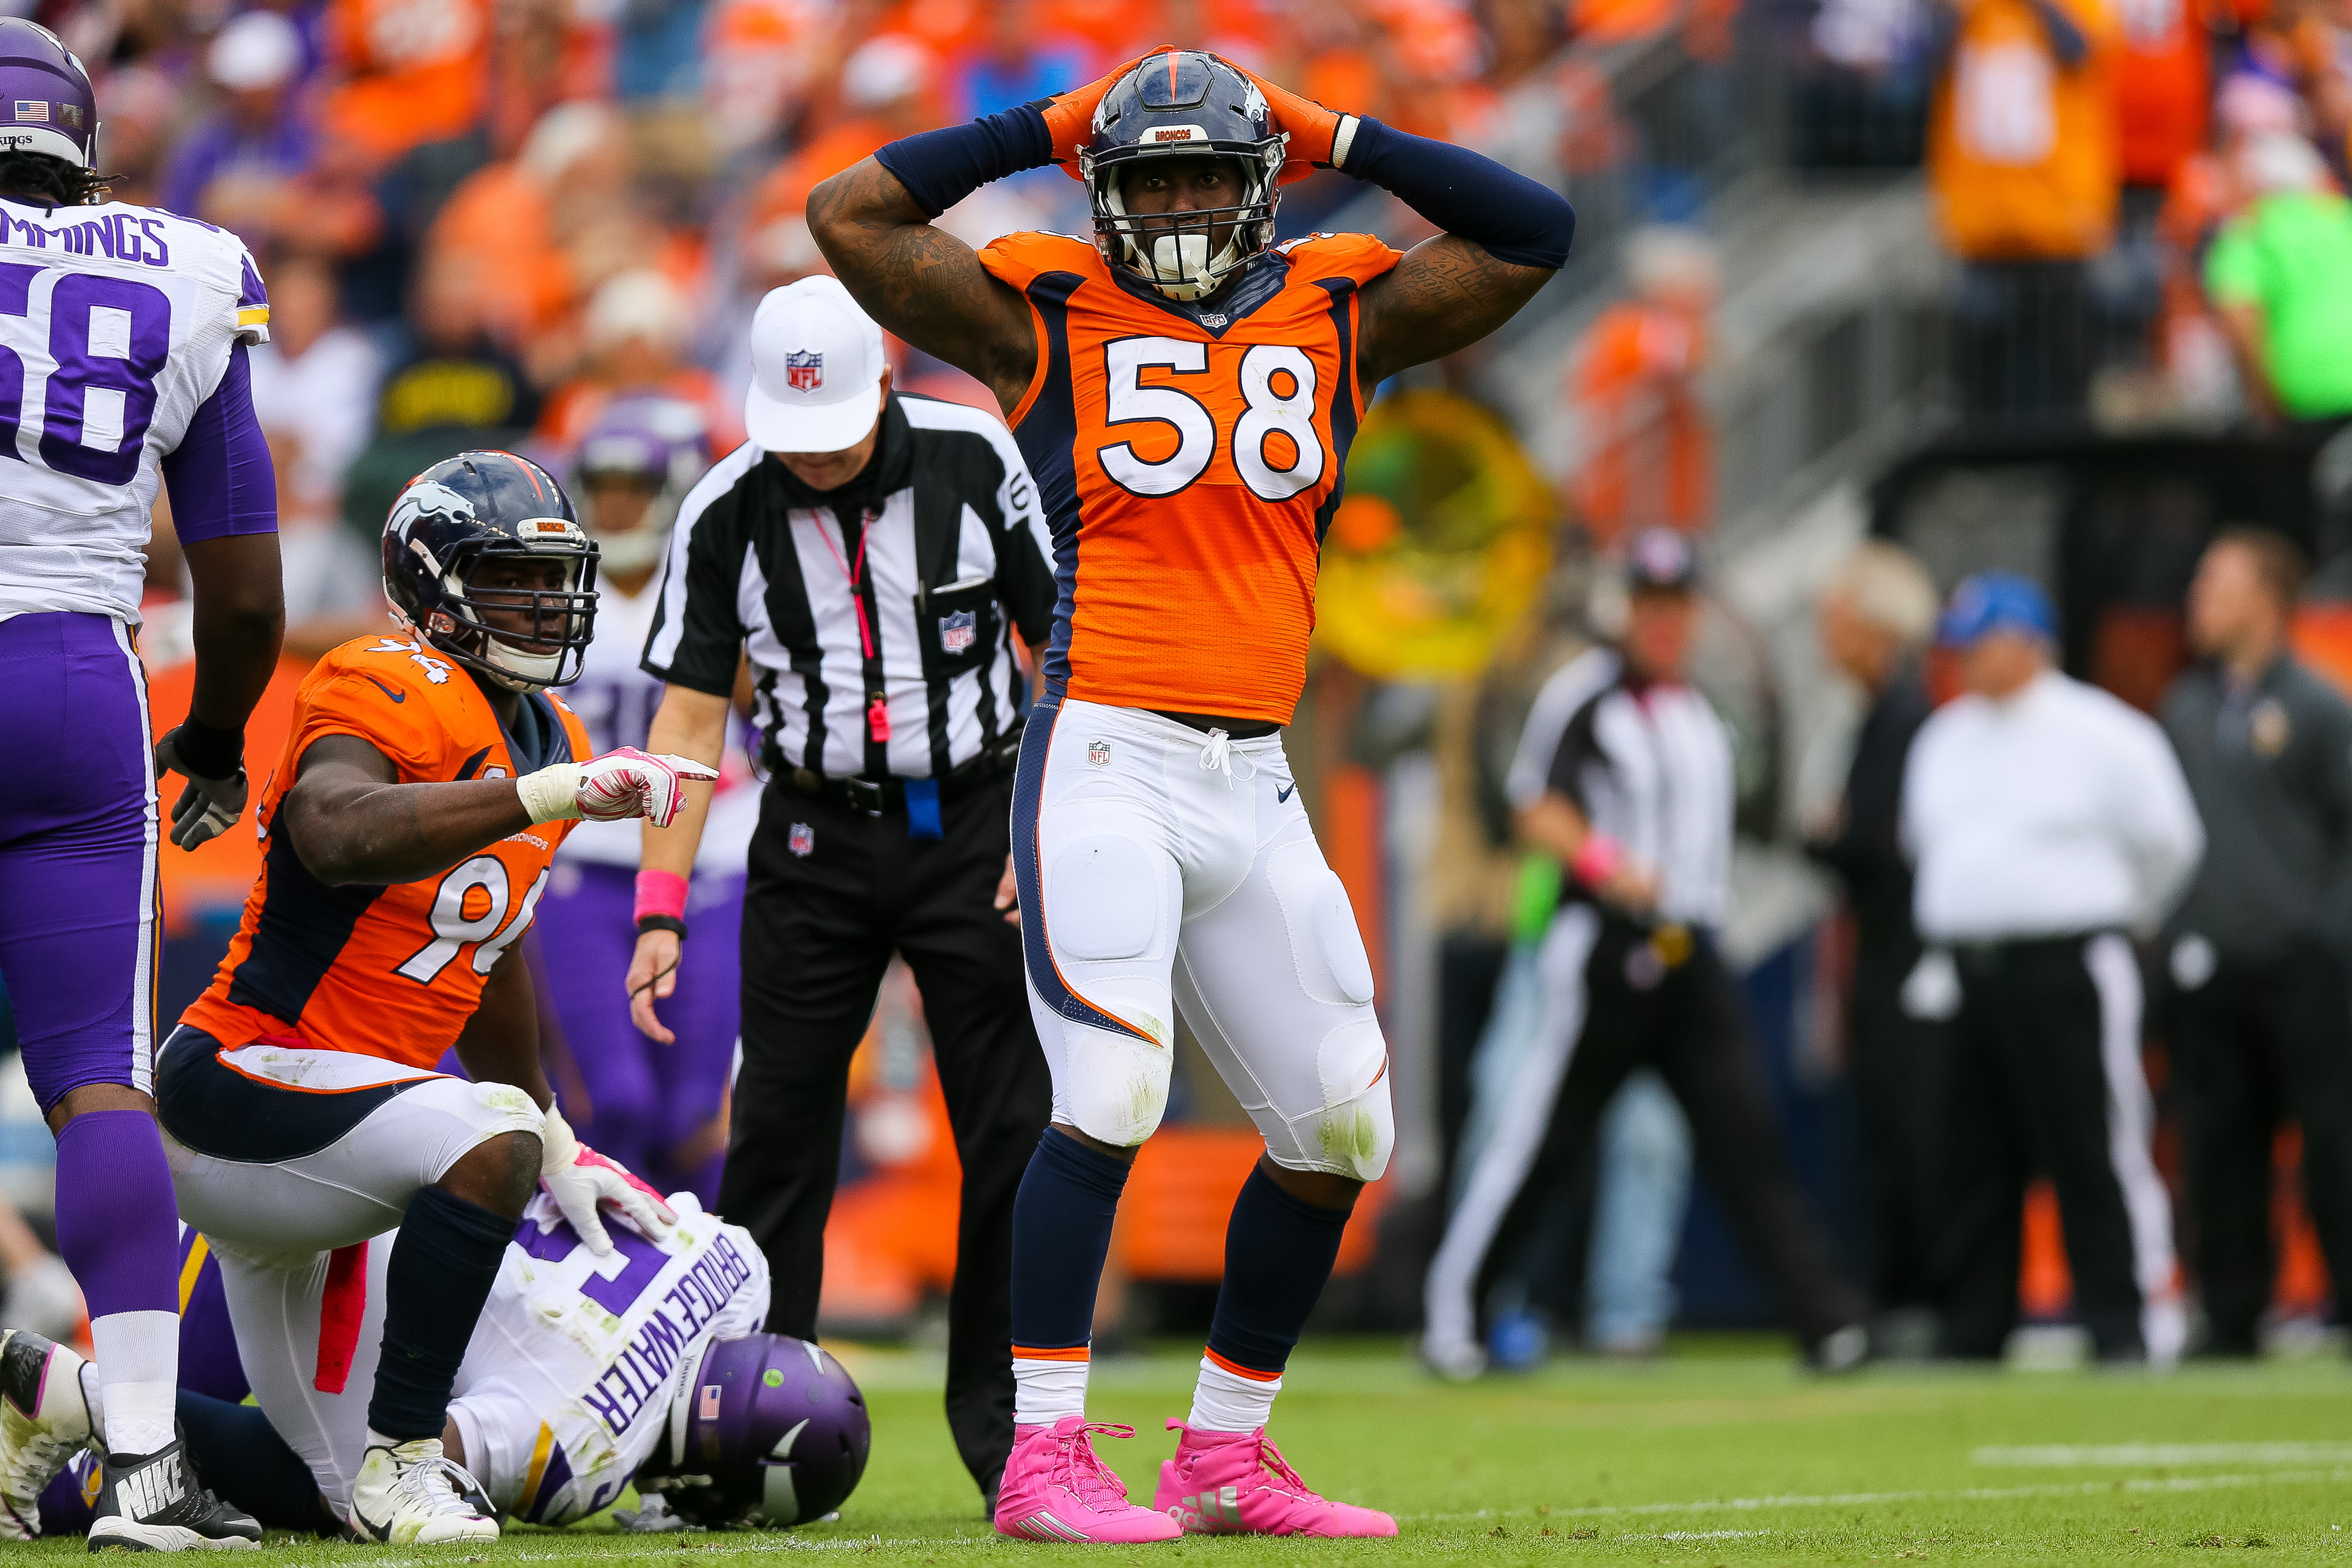 Outside linebacker Von Miller #58 of the Denver Broncos celebrates after sacking quarterback Teddy Bridgewater #5 of the Minnesota Vikings during a game at Sports Authority Field at Mile High on October 4, 2015 in Denver, Colorado. (Photo by Justin Edmonds/Getty Images)